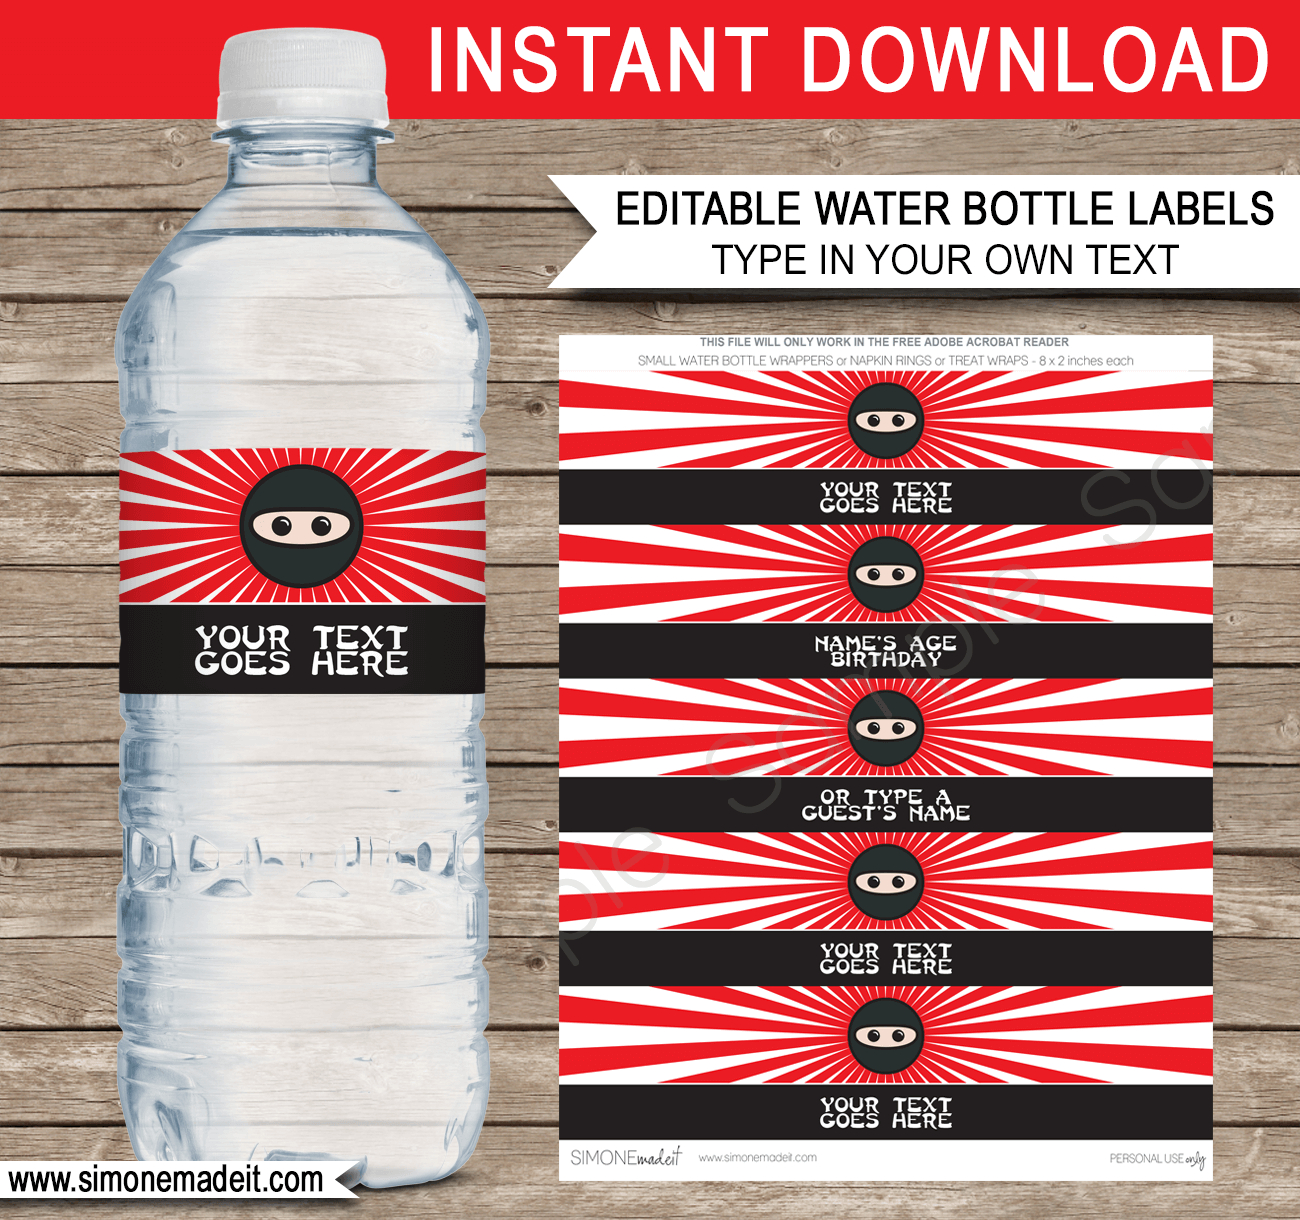 Ninja Water Bottle Labels Template | Ninja Theme Birthday Party - Free Printable Paris Water Bottle Labels